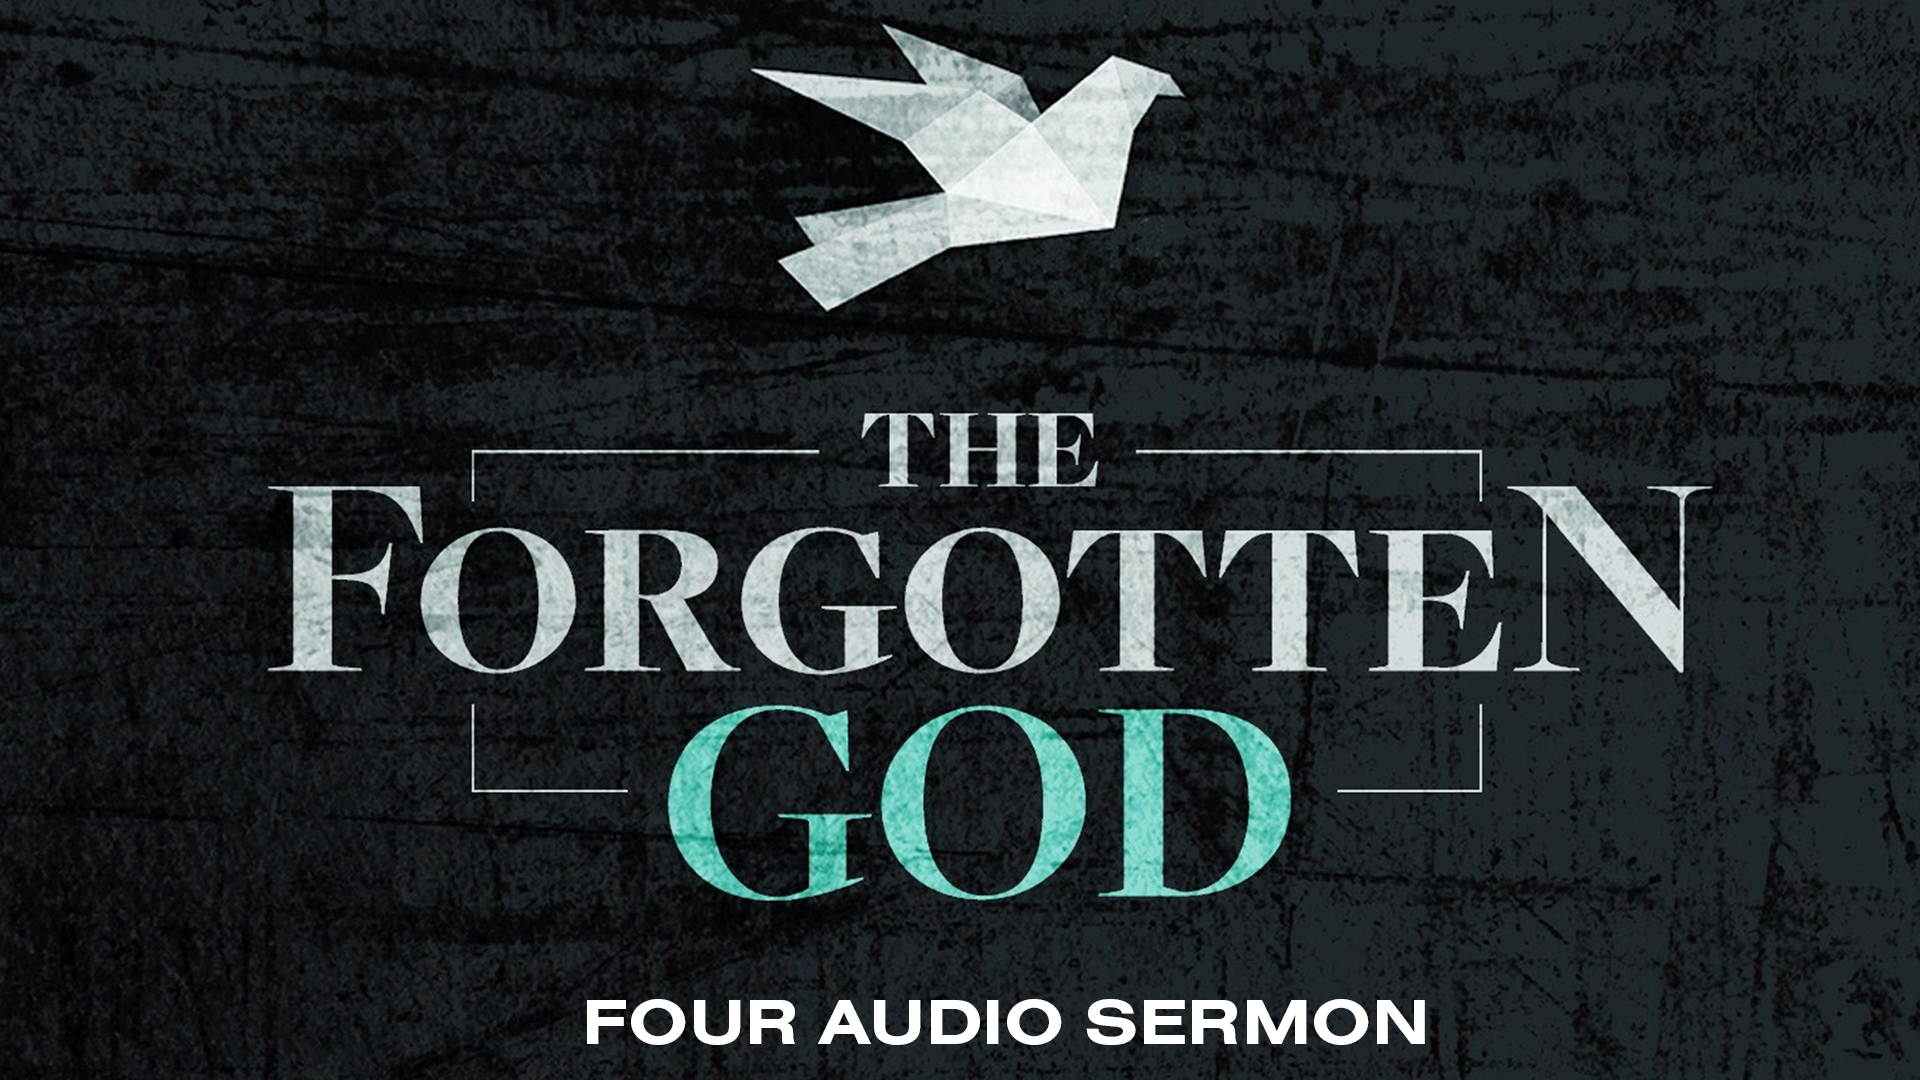 https://vladimirsavchuk.com/resources/the-forgotten-god-audio-series/